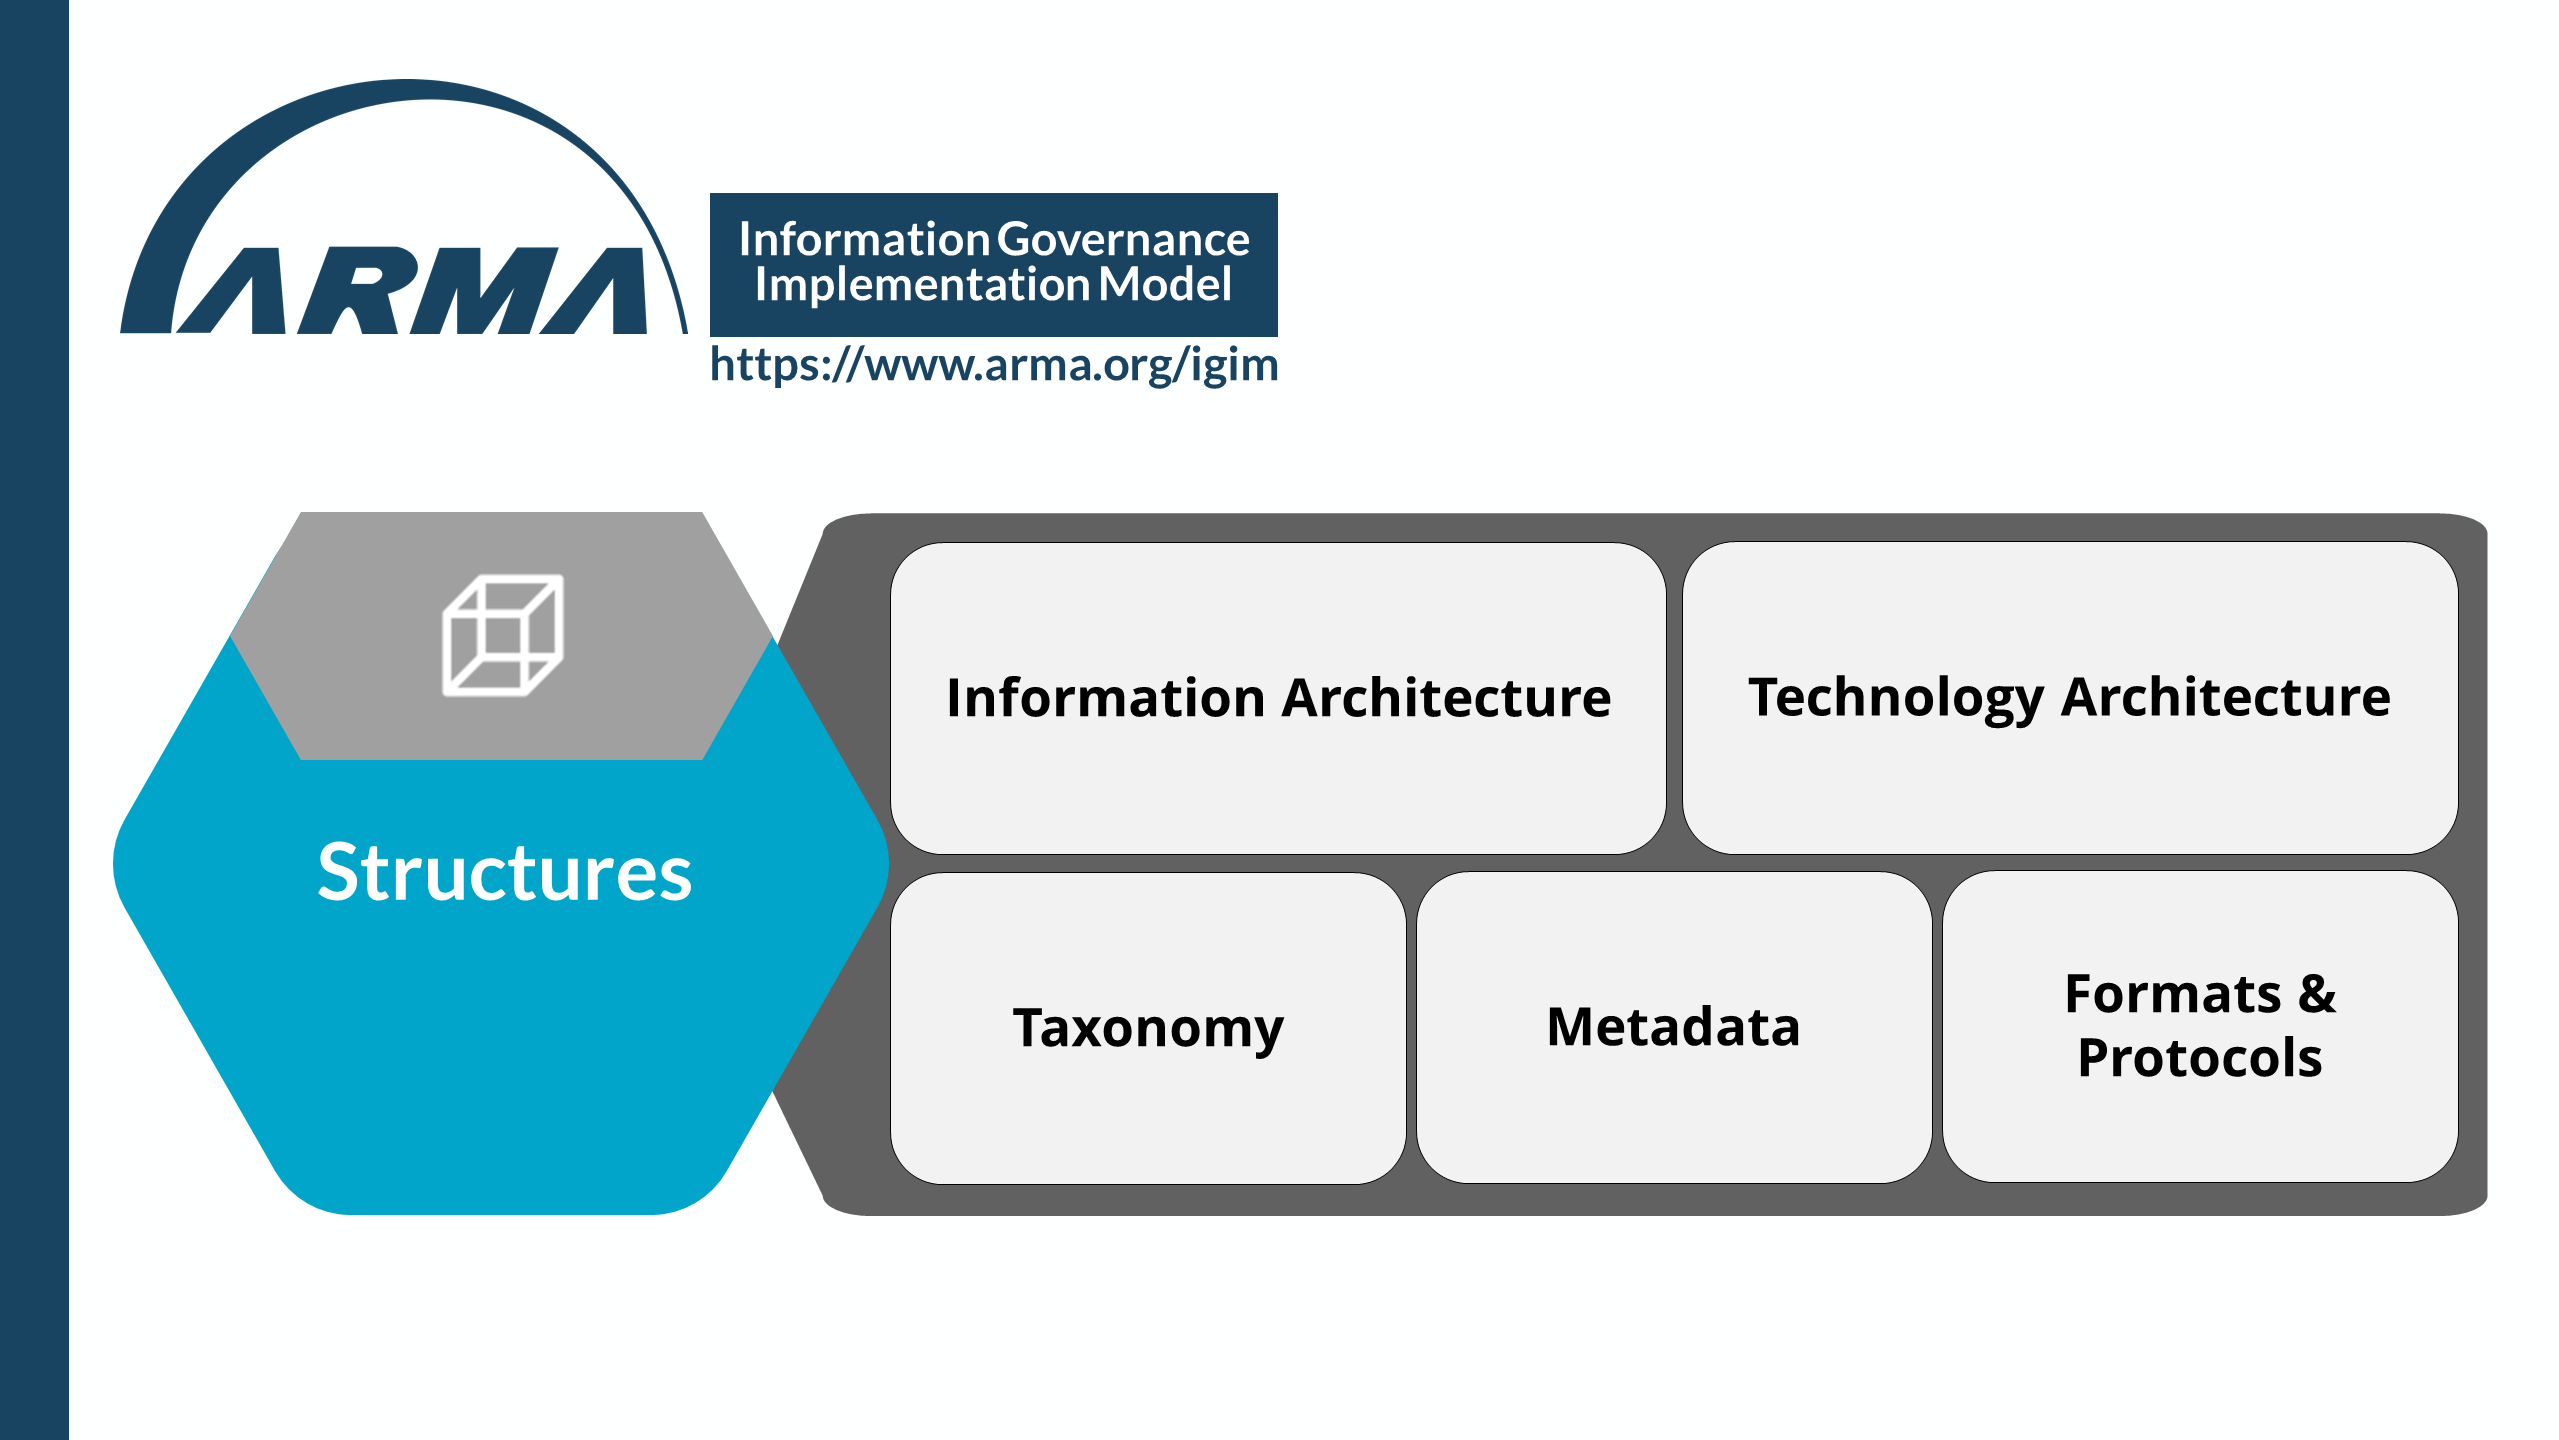 Information Governance Implementation Model - Structures